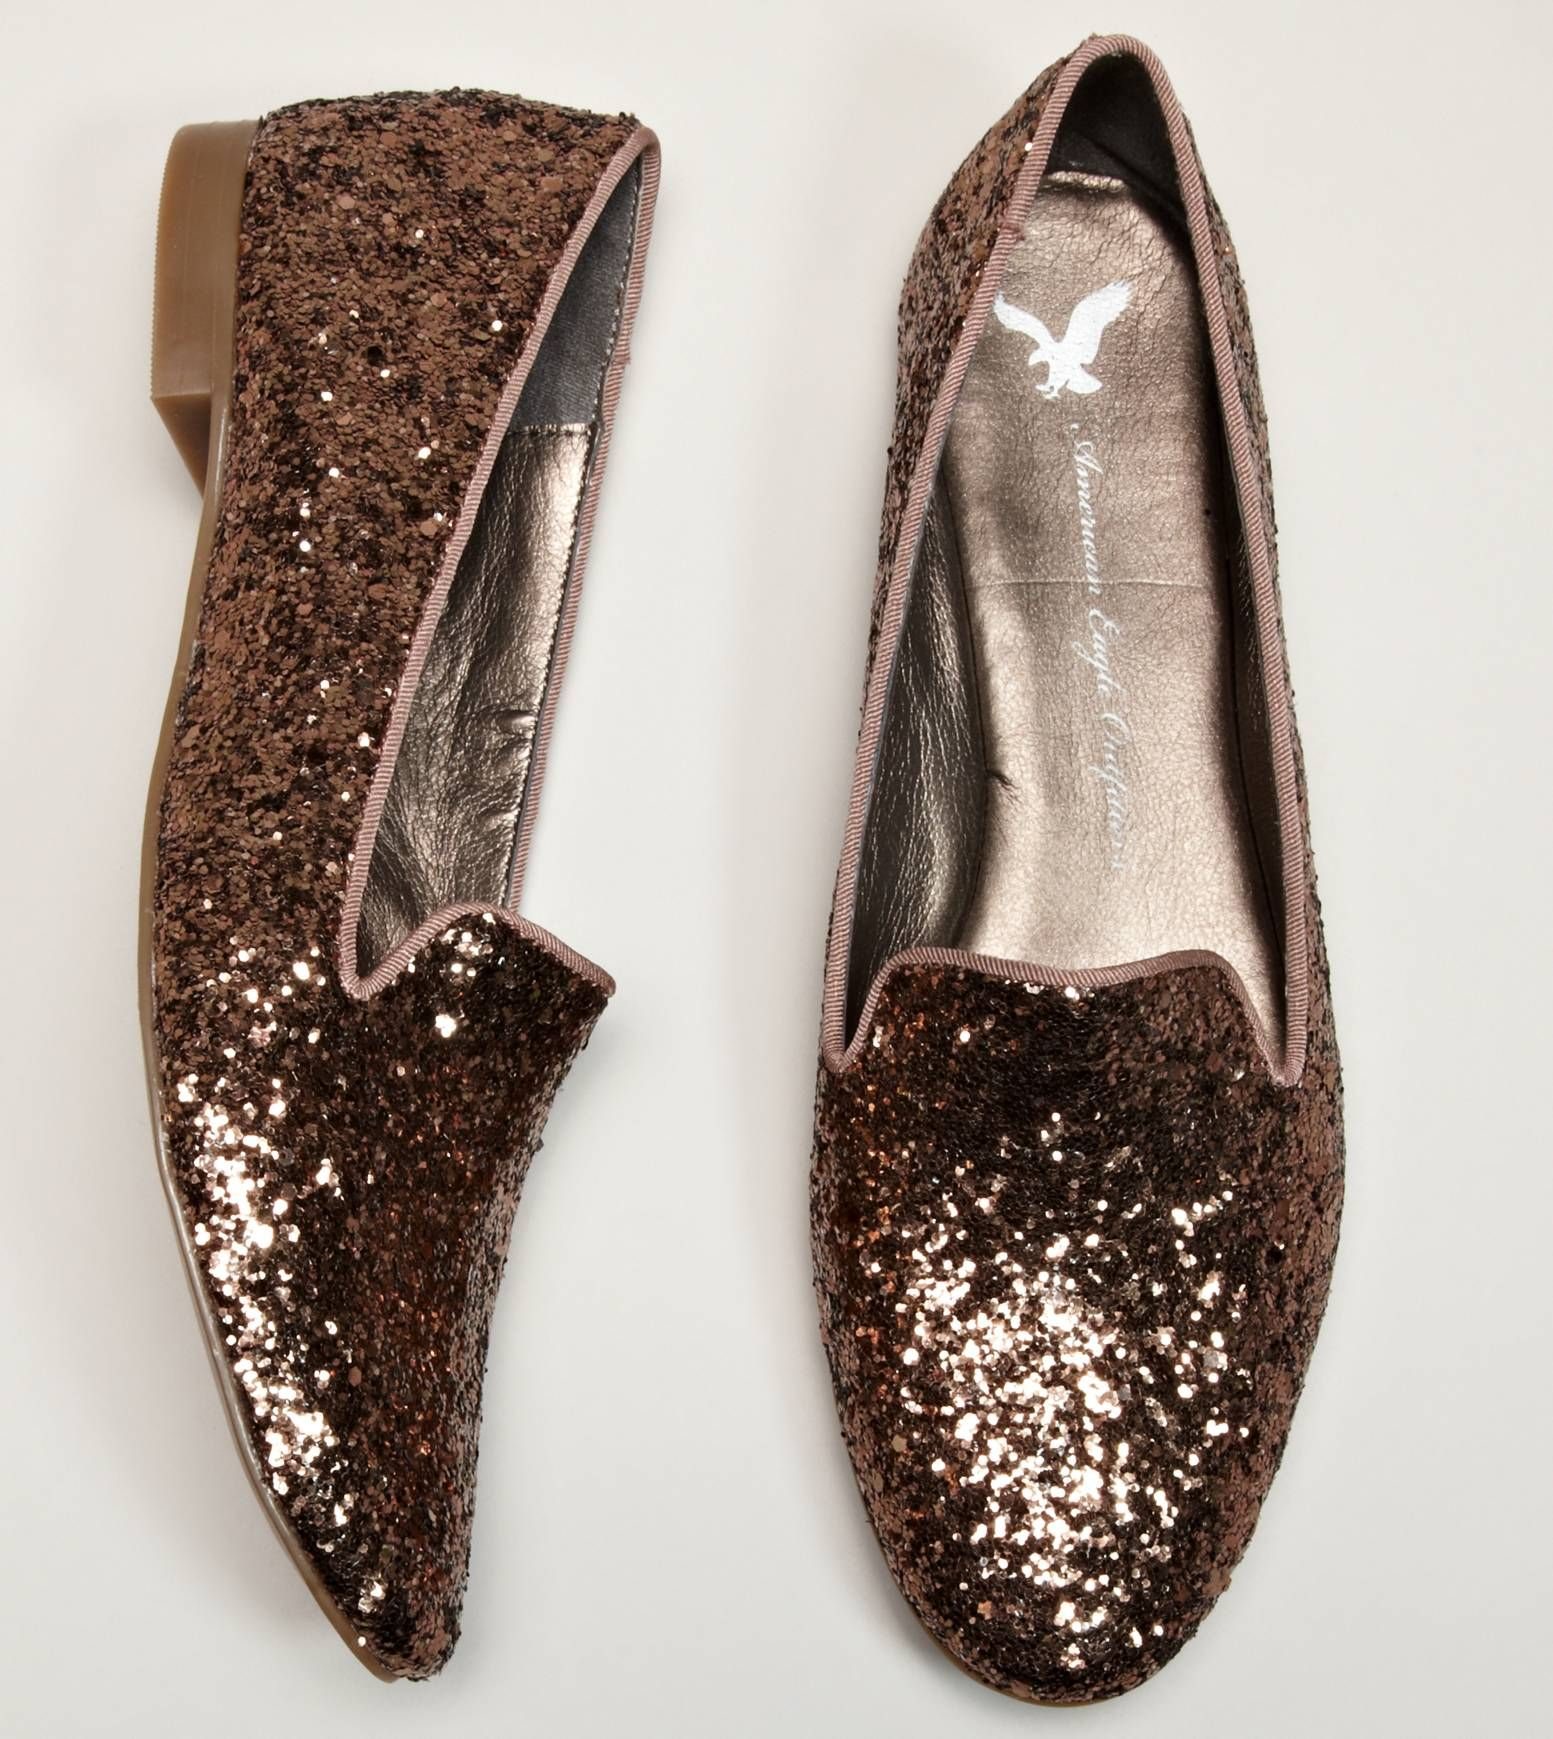 Sparkle + loafers = meant to be!   For just $19.99 @ American Eagle Outfitters